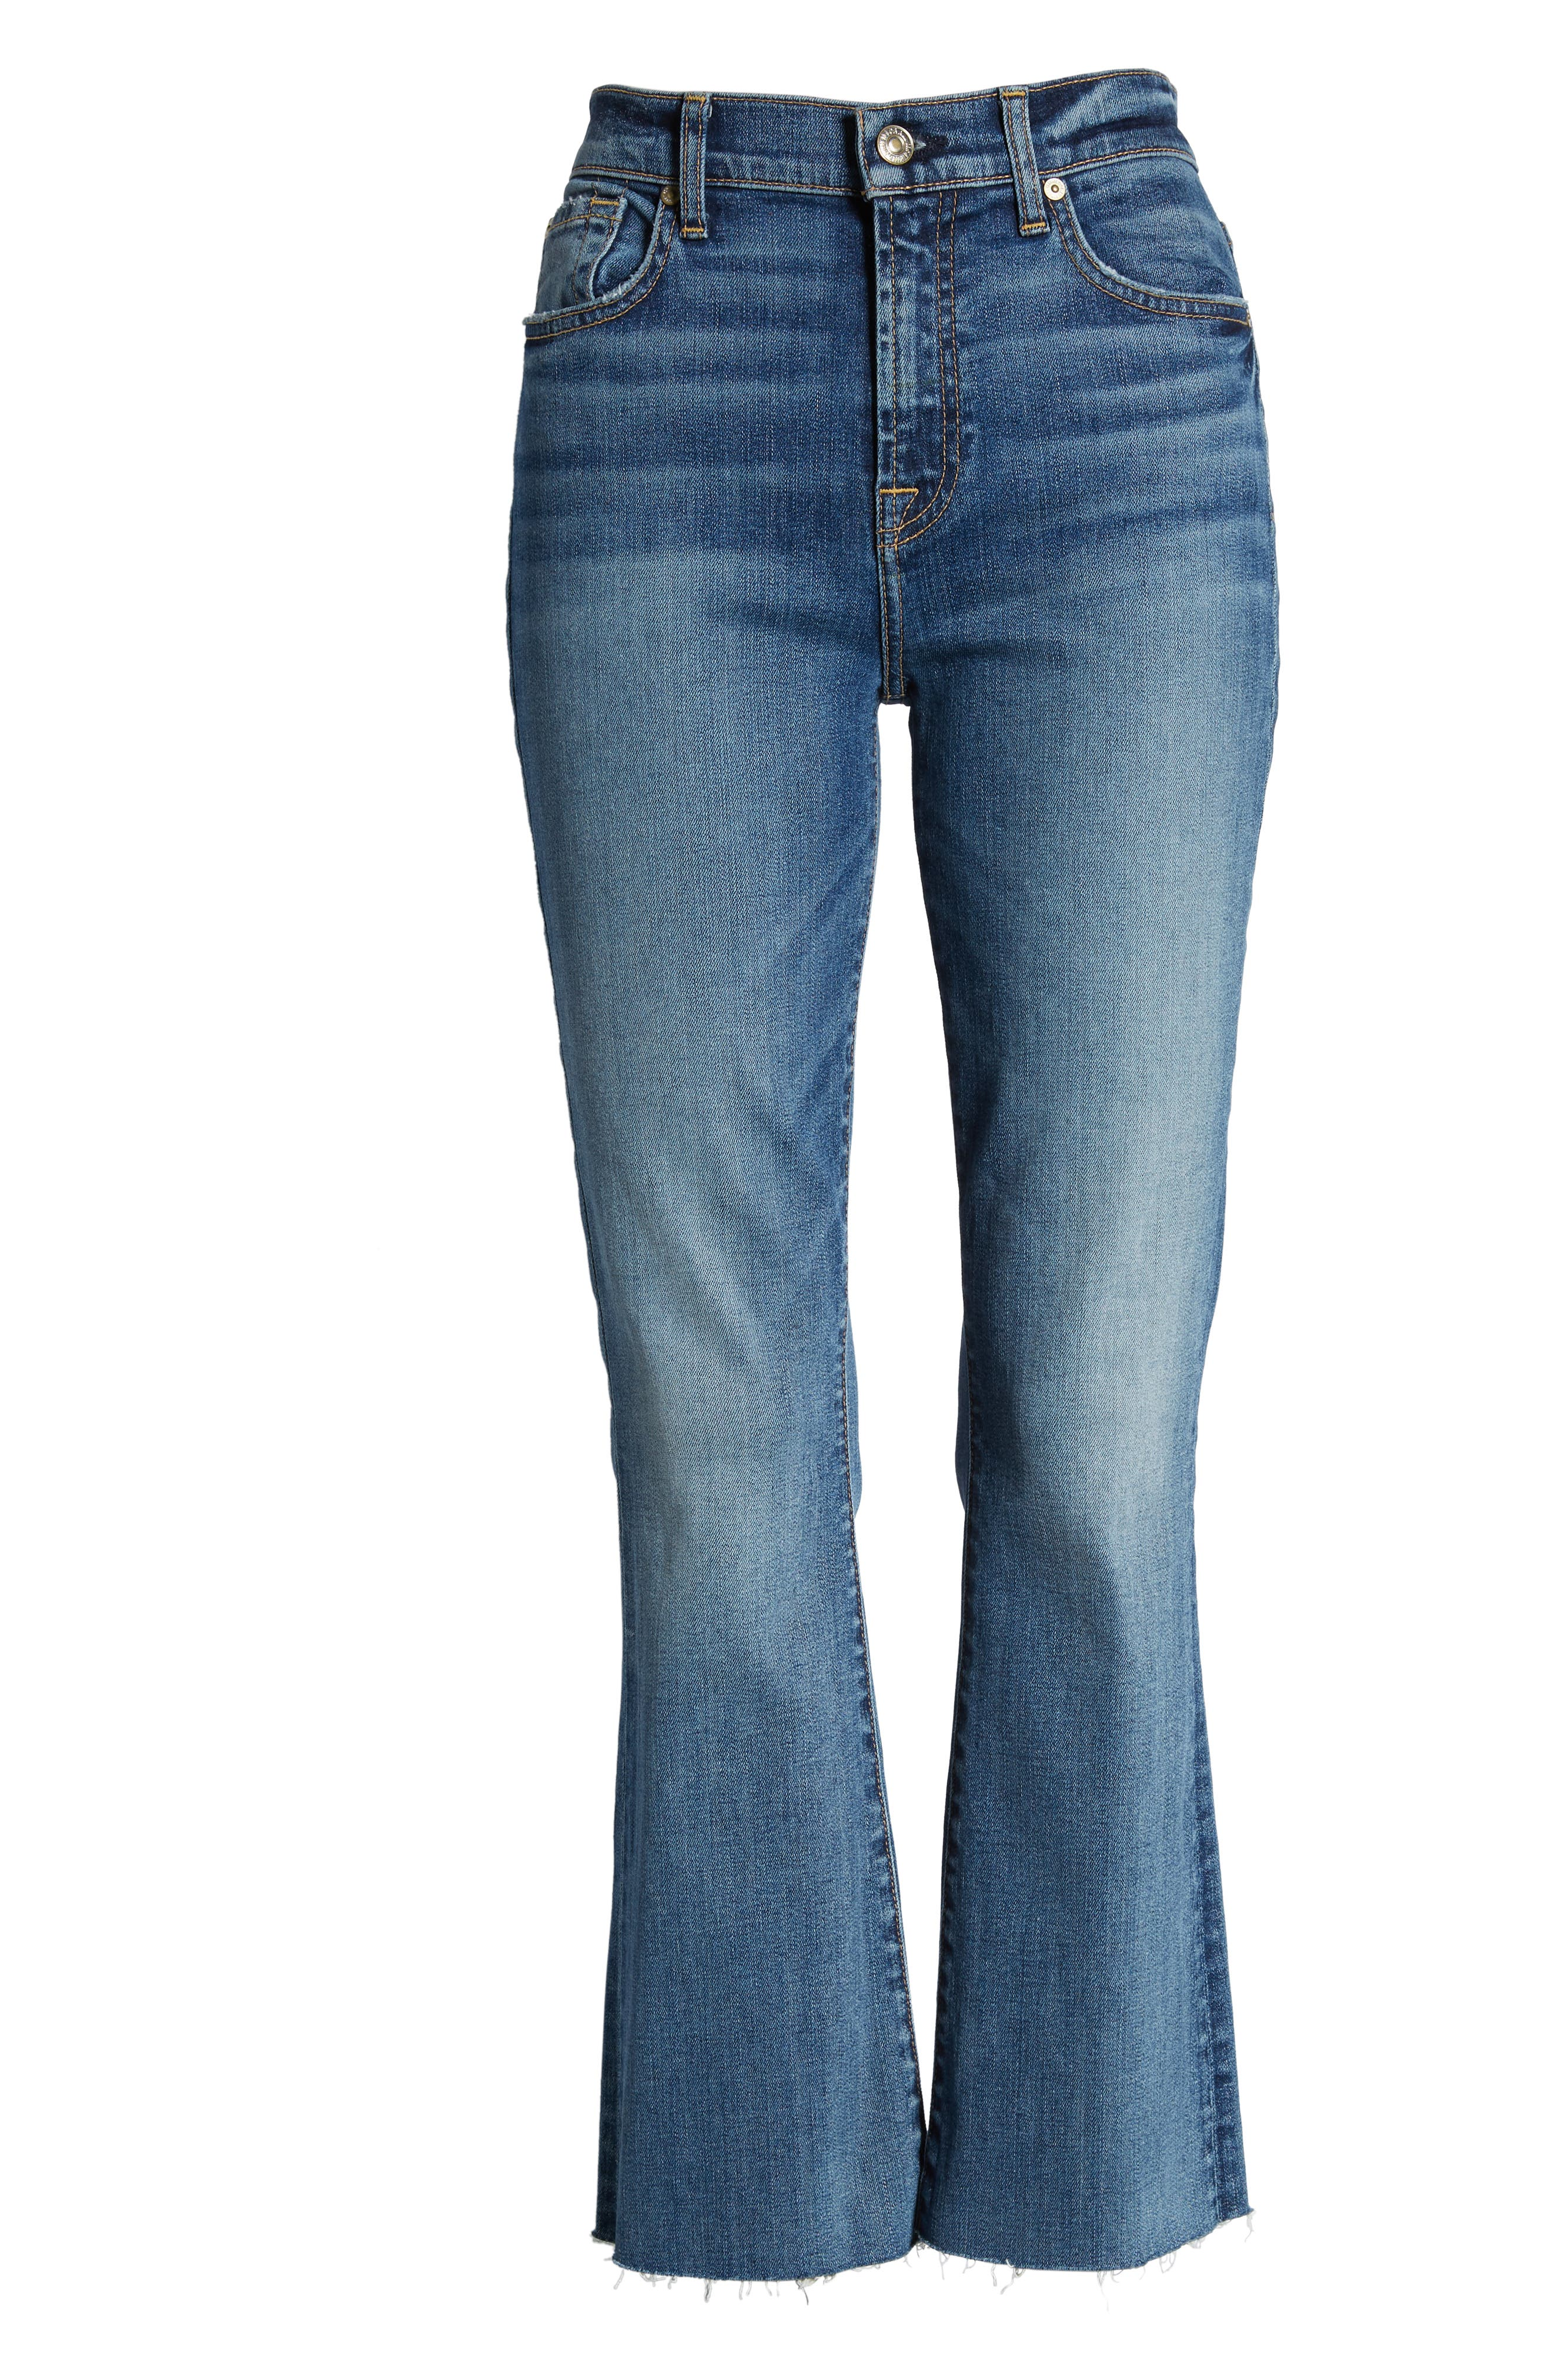 7 FOR ALL MANKIND<SUP>®</SUP>, High Waist Slim Crop Flare Jeans, Alternate thumbnail 7, color, CANYON RANCH